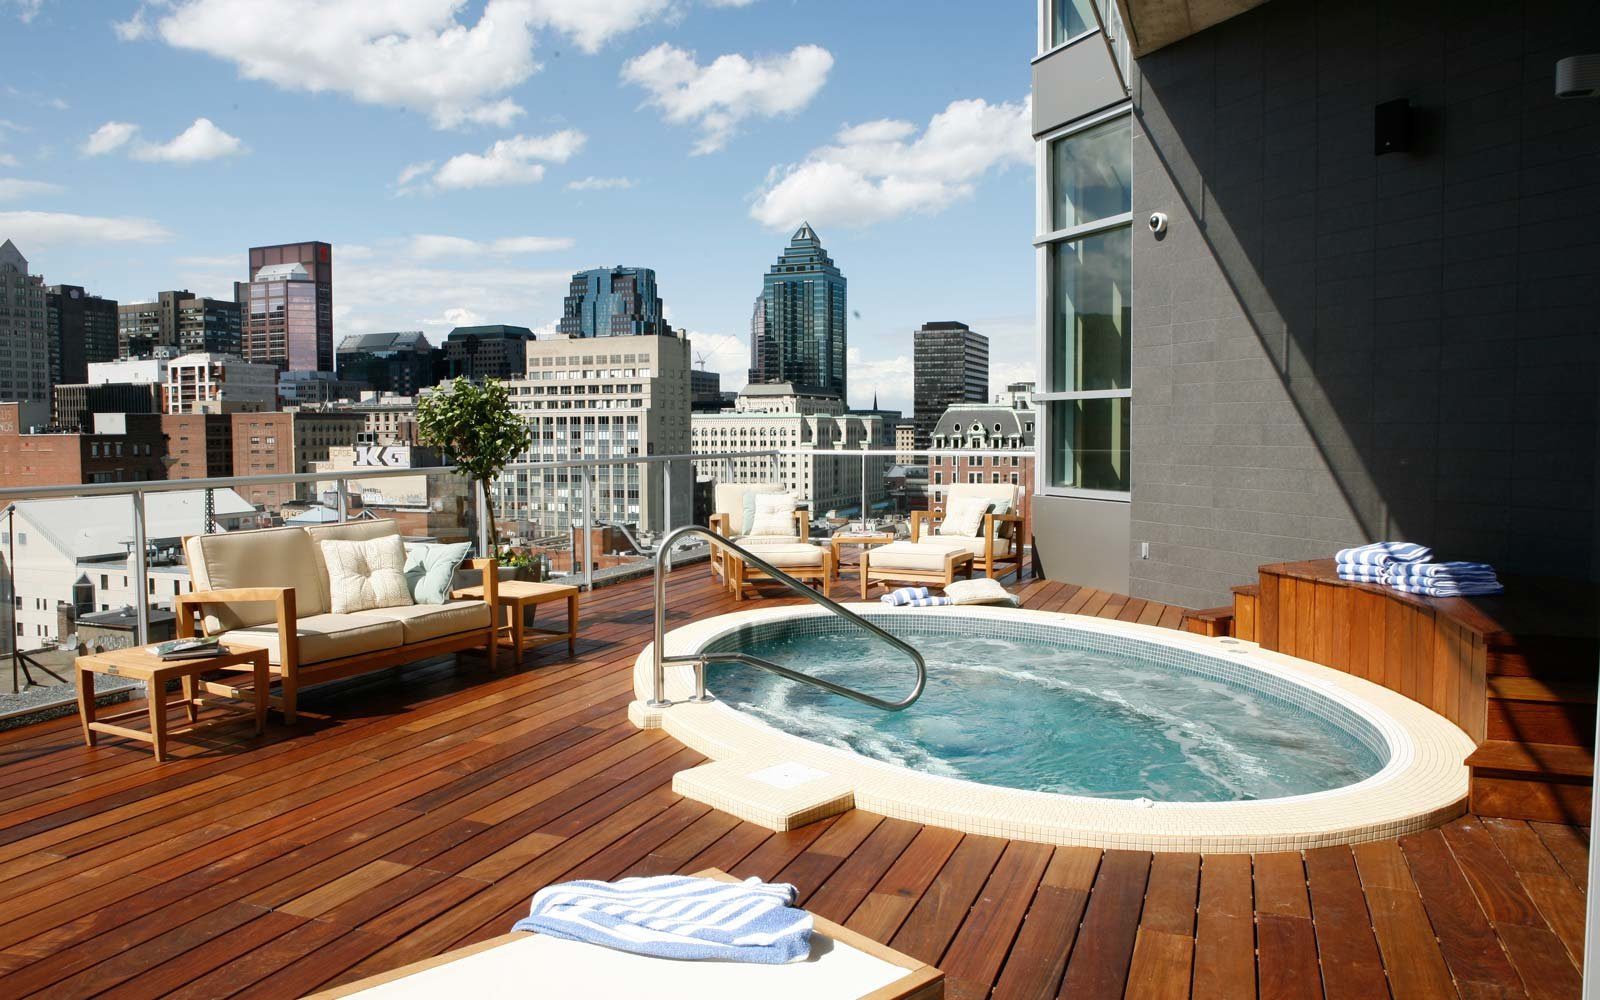 Jacuzzi Pool India 25 Rooftop Pools To Dream About While You Sit In The Office